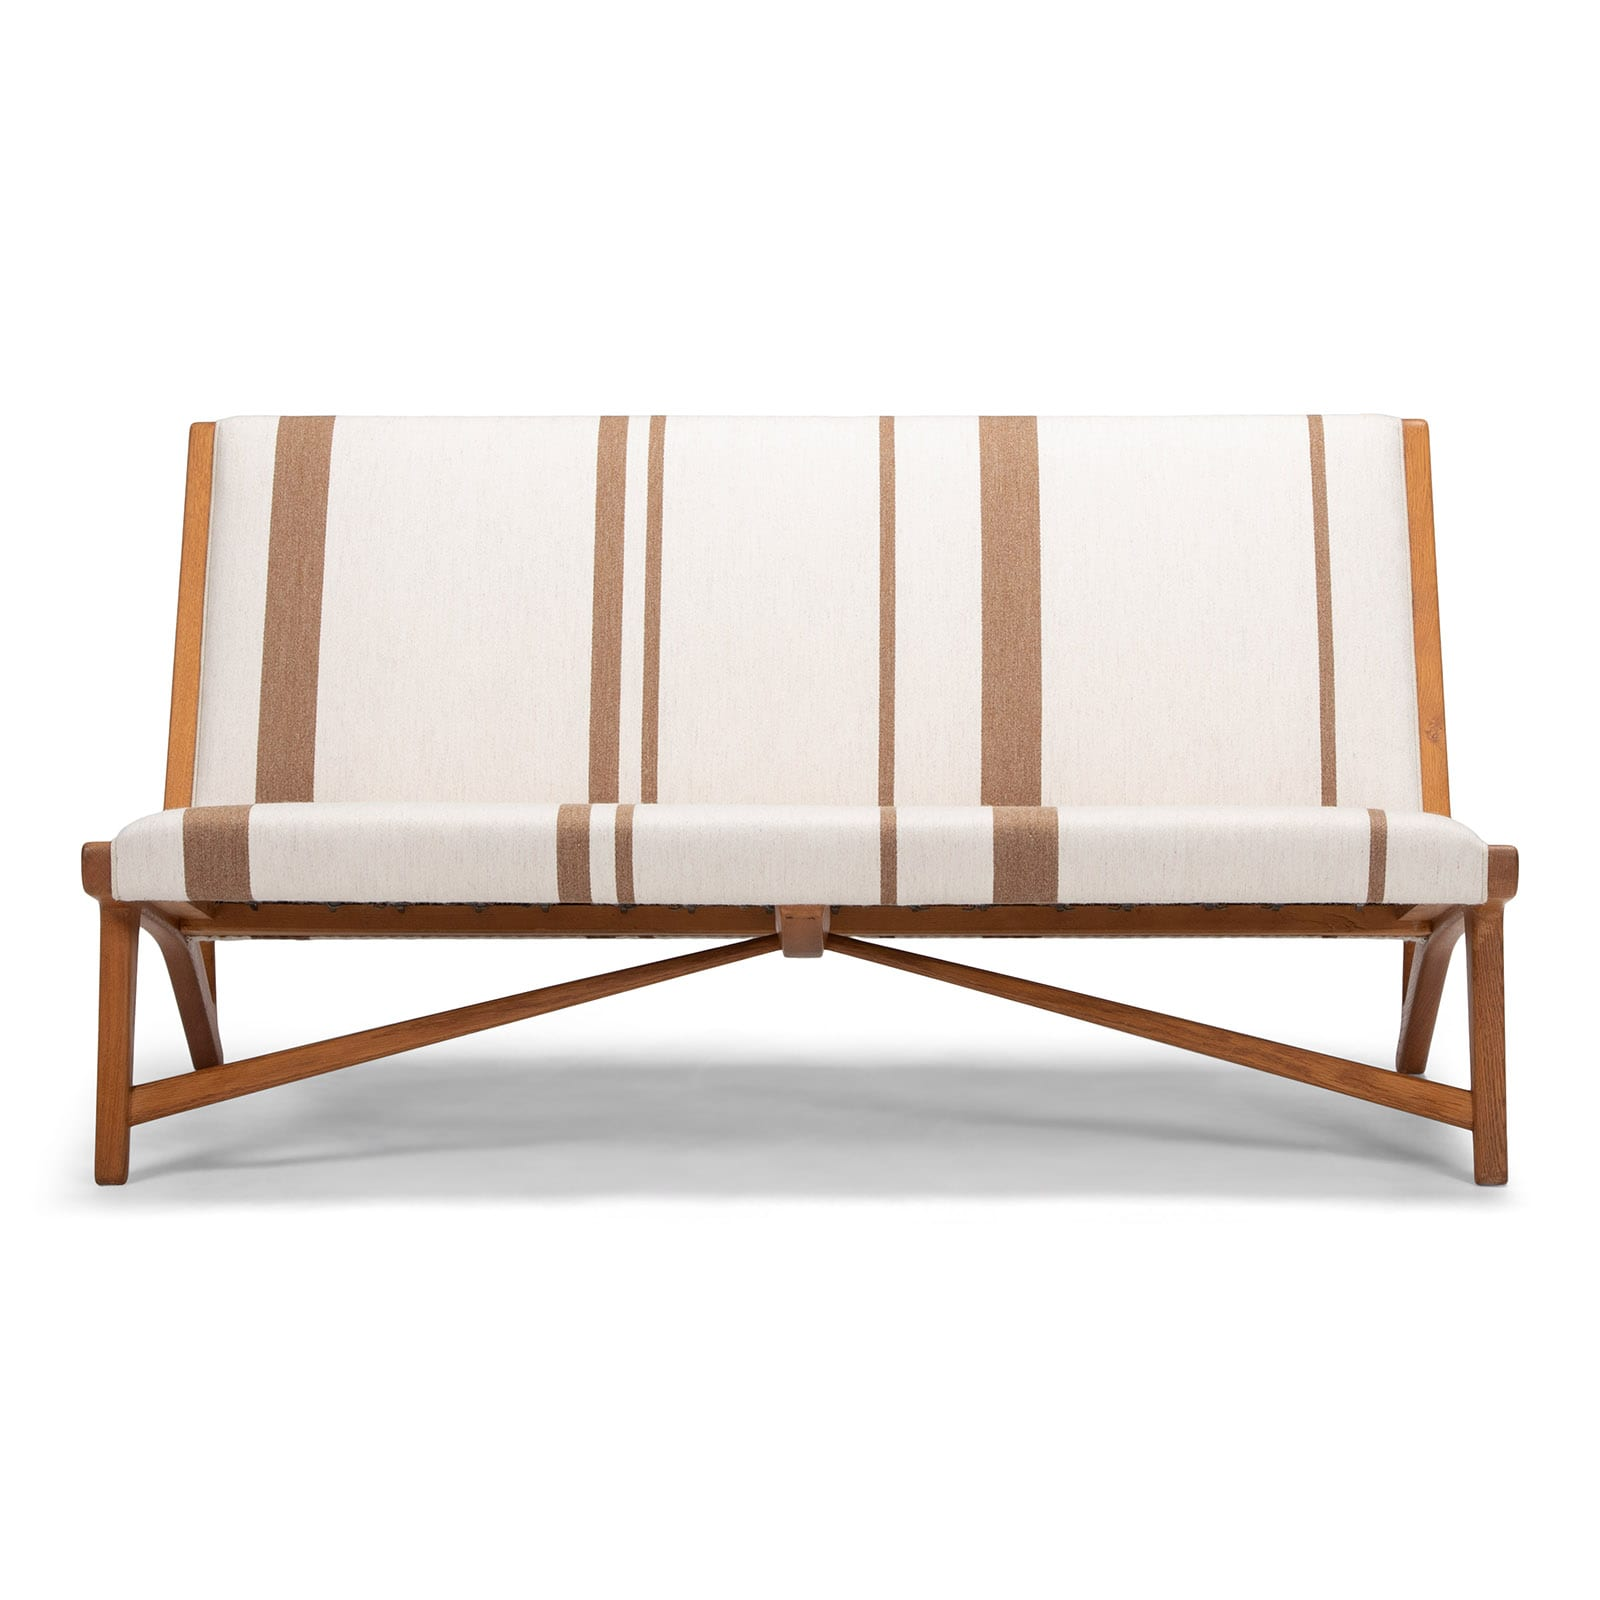 The 'American' sofa bench